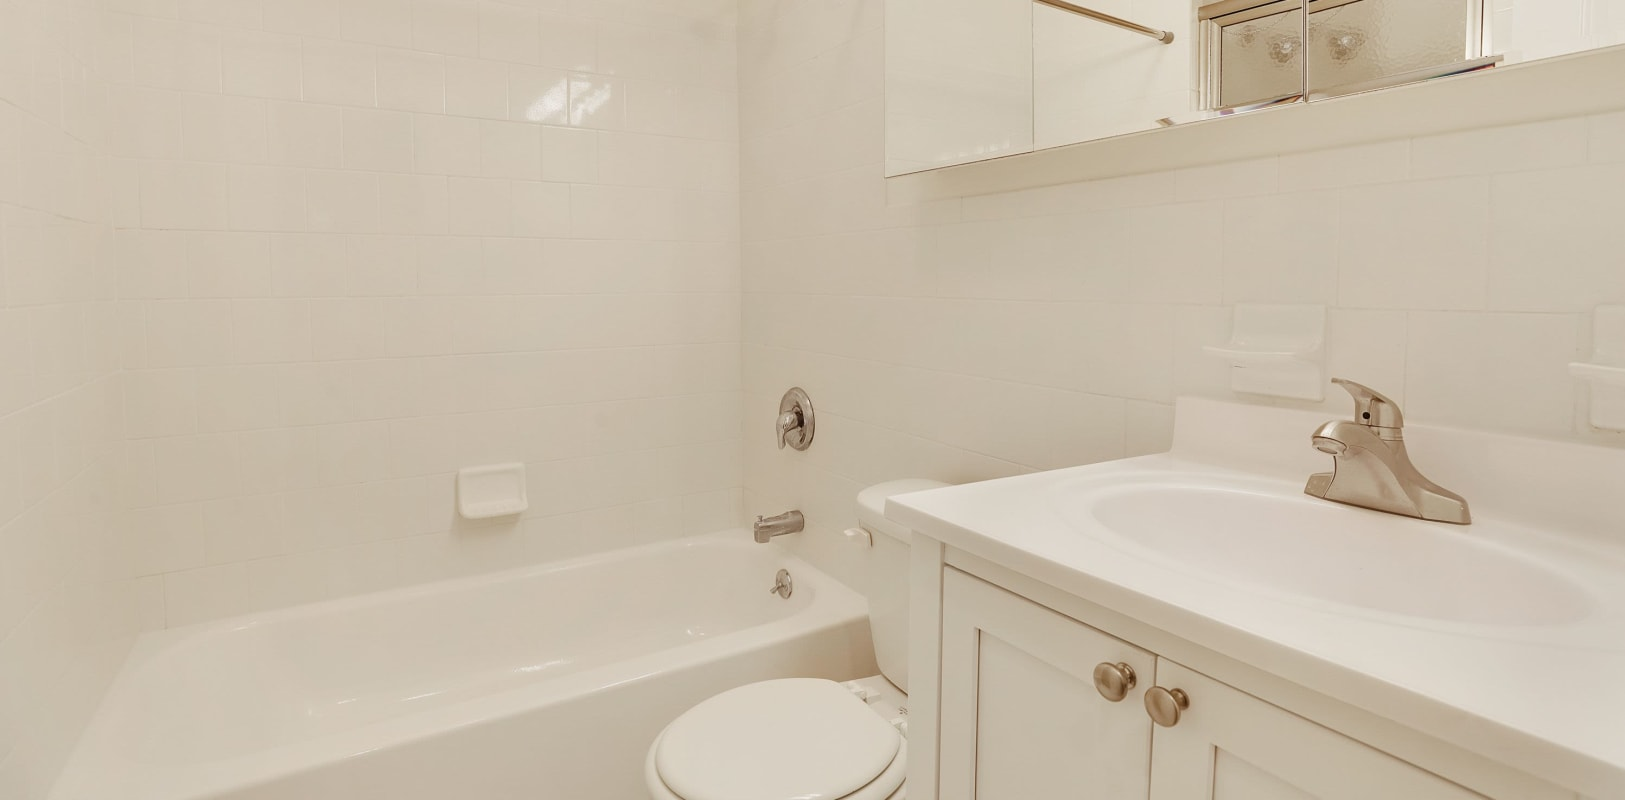 Clean bathroom at Hamilton Court in Morristown, New Jersey